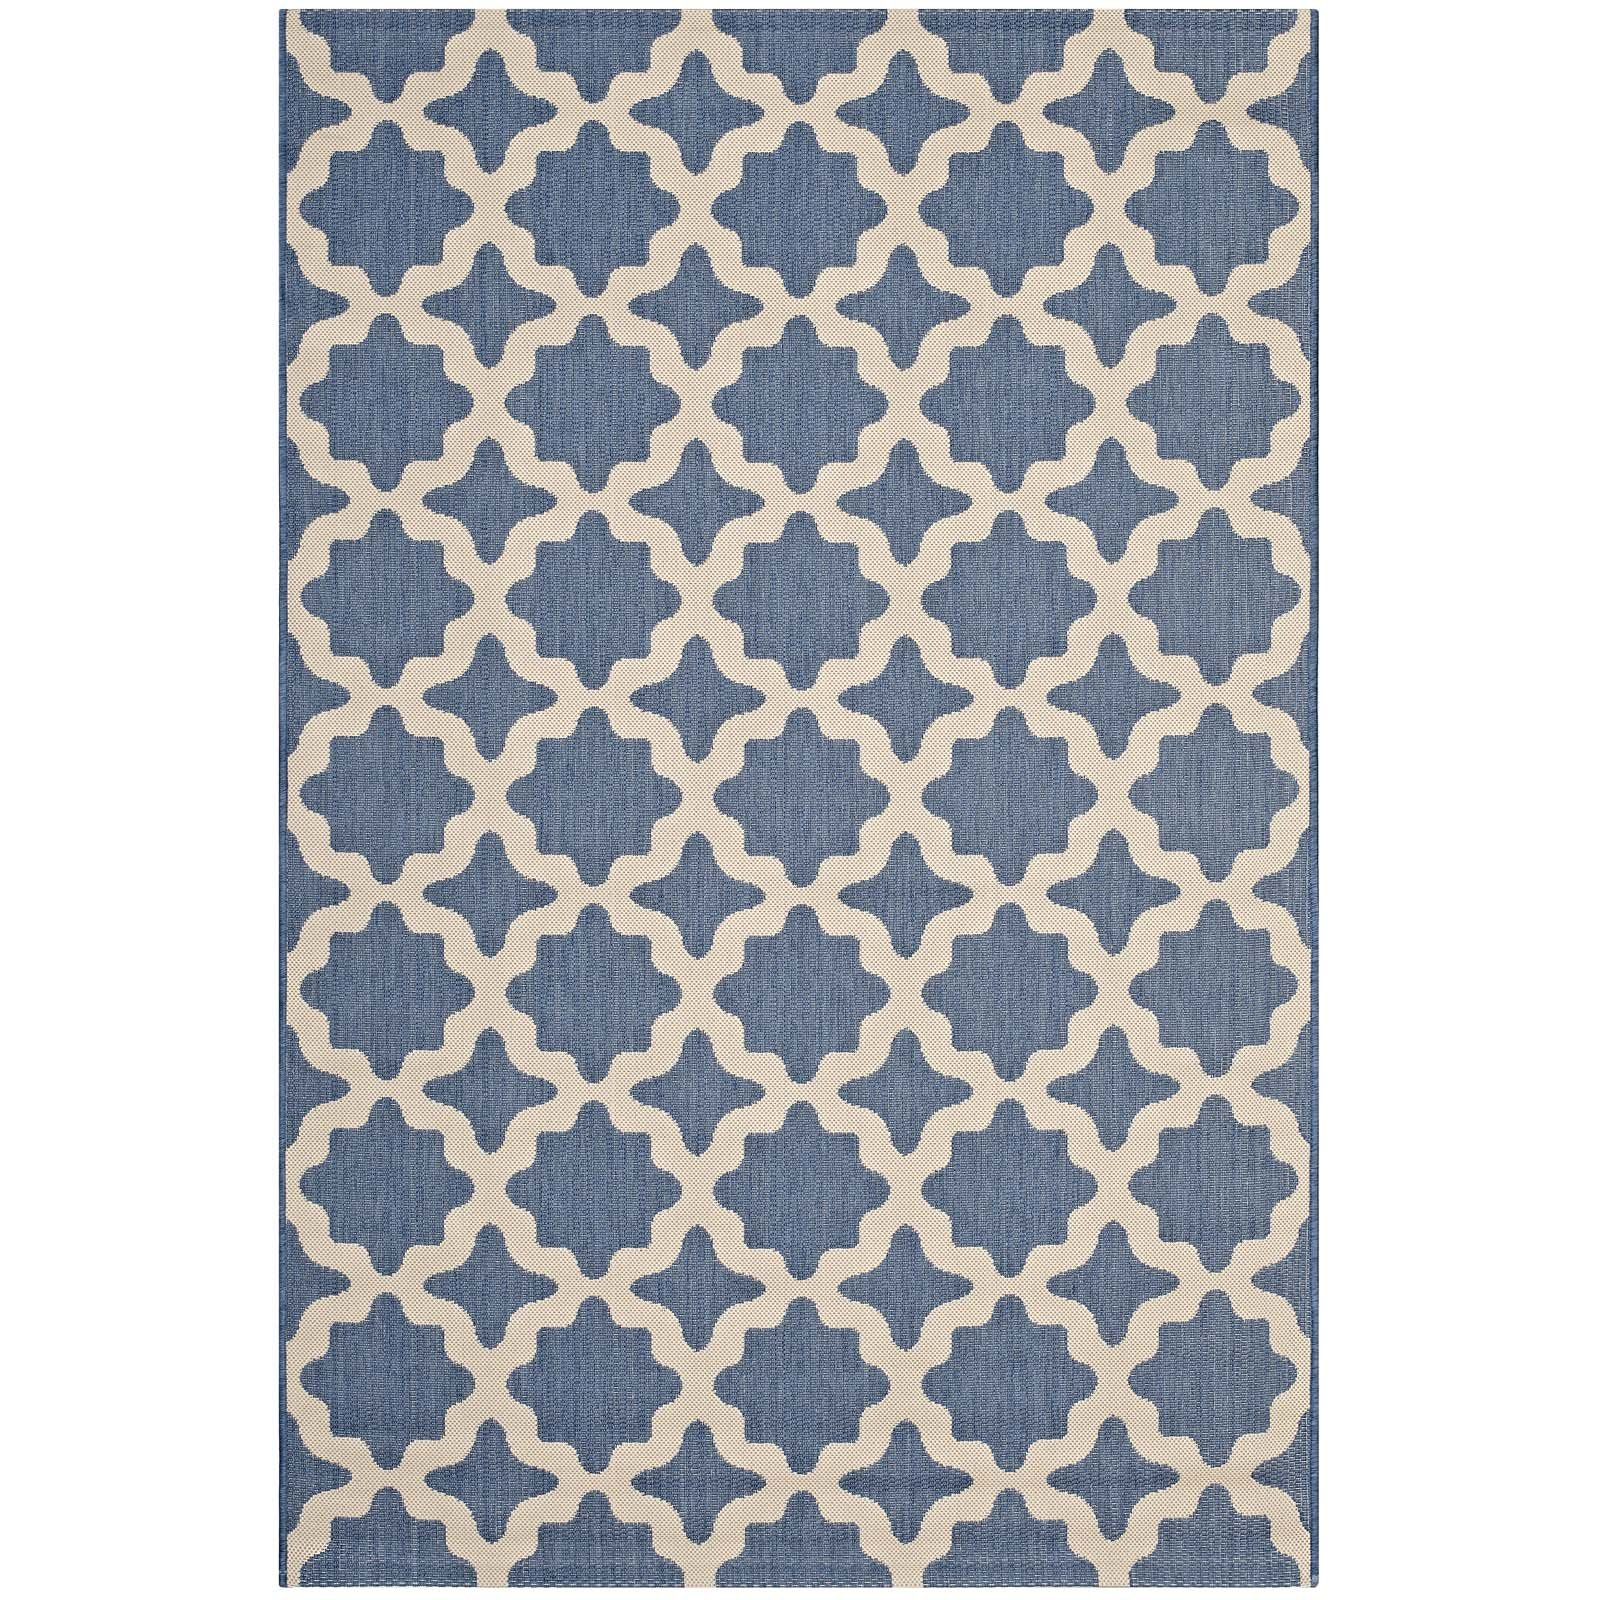 Modway R-1139C-810 Cerelia Distressed Vintage Floral Lattice 5x8 Area Rug, 8X10, Blue and Beige